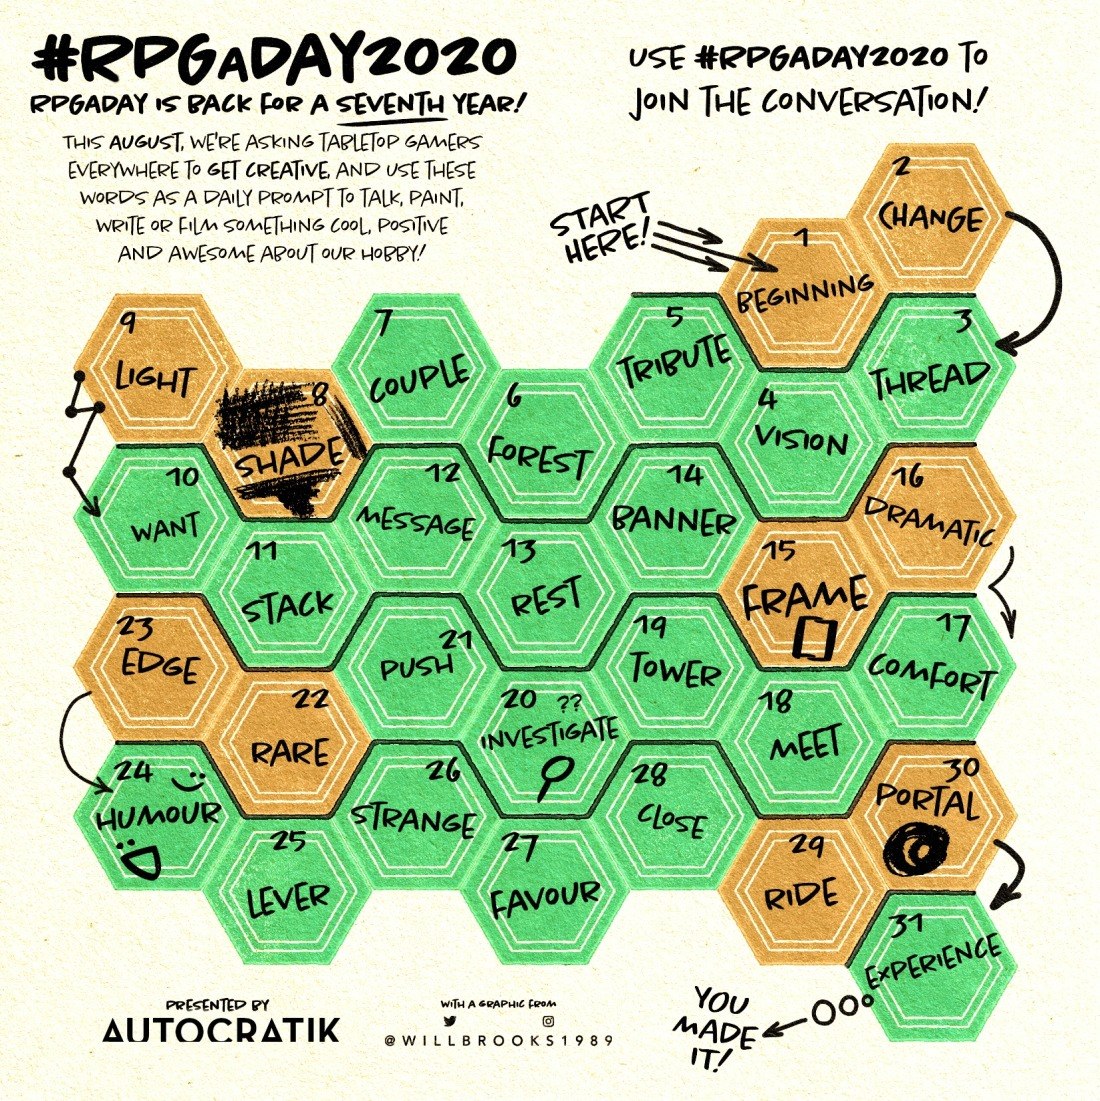 RPGaDay2020 graphic